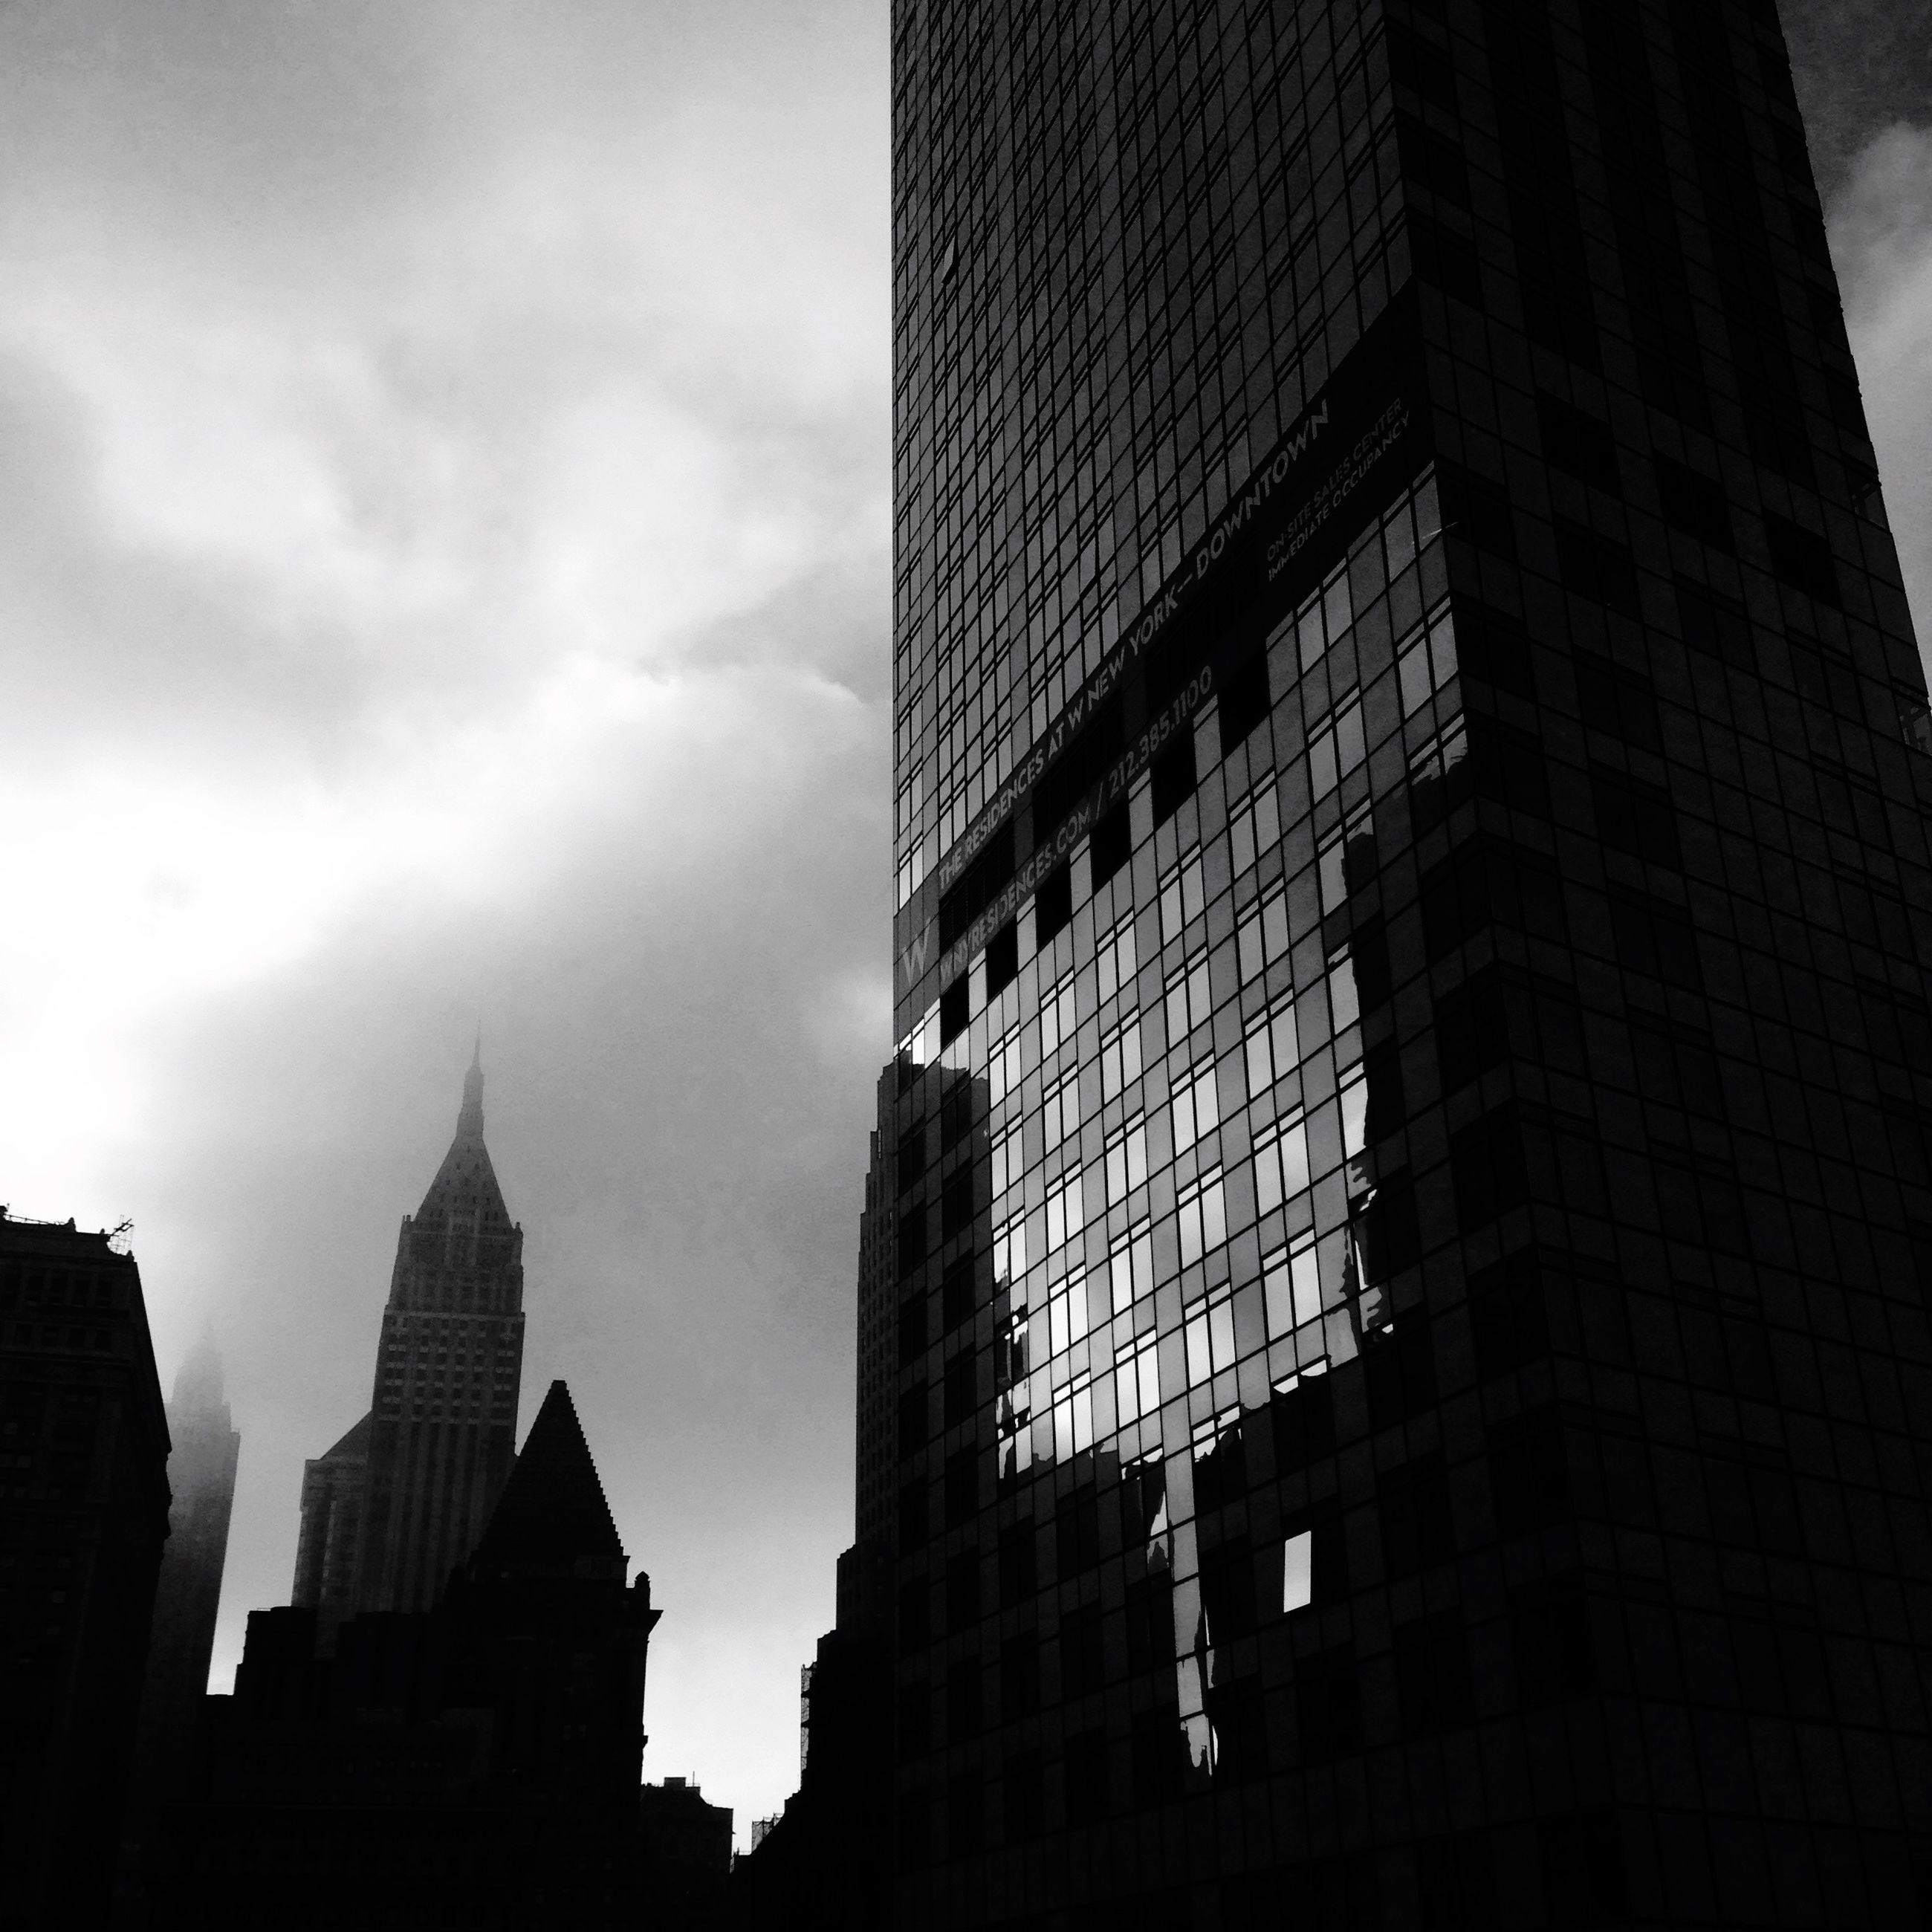 architecture, building exterior, built structure, city, low angle view, skyscraper, sky, tall - high, office building, tower, modern, building, cloud - sky, tall, city life, silhouette, outdoors, capital cities, cloud, no people